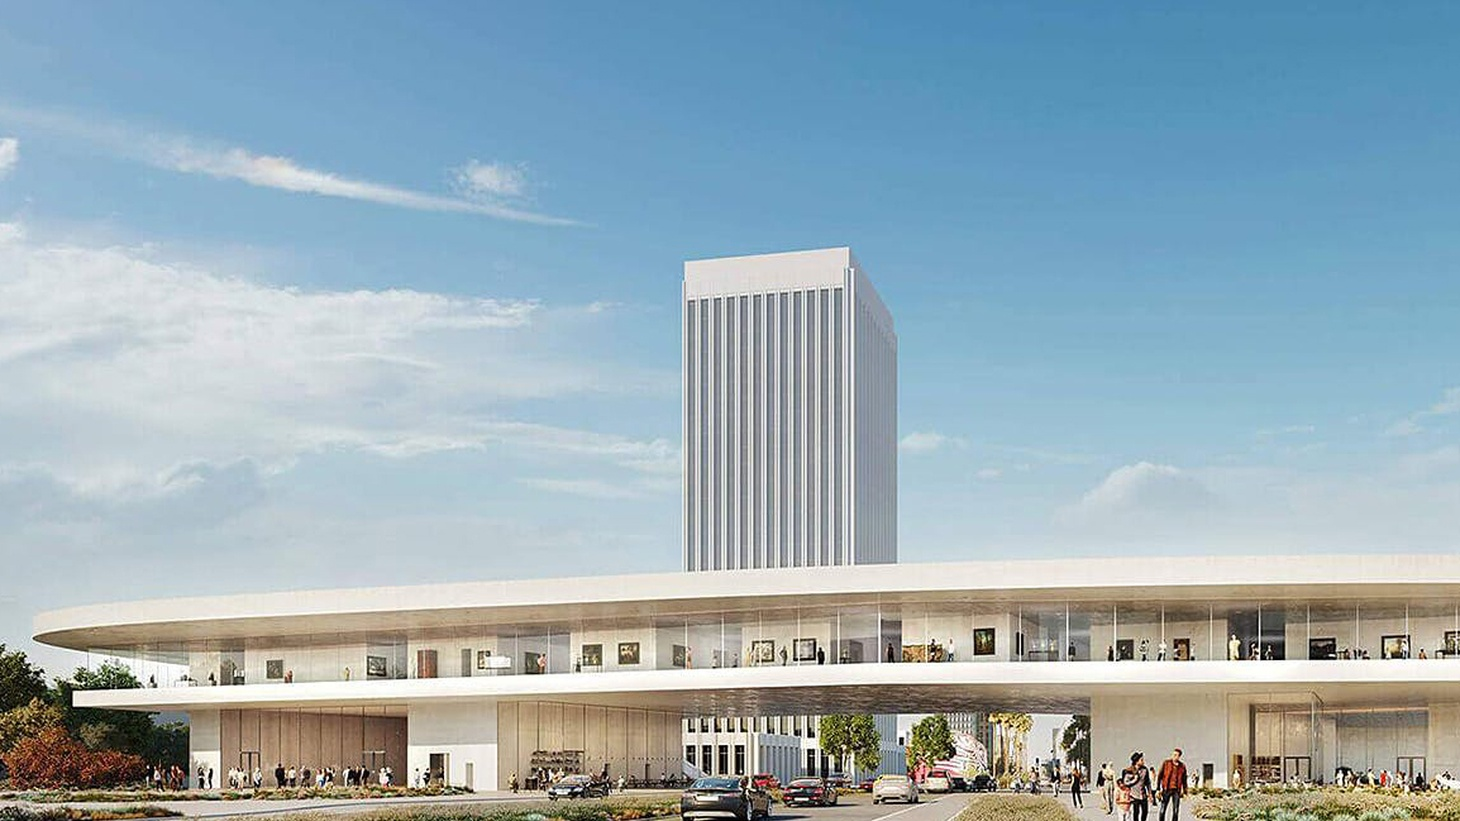 A new rendering of the Peter Zumthor design for LACMA.